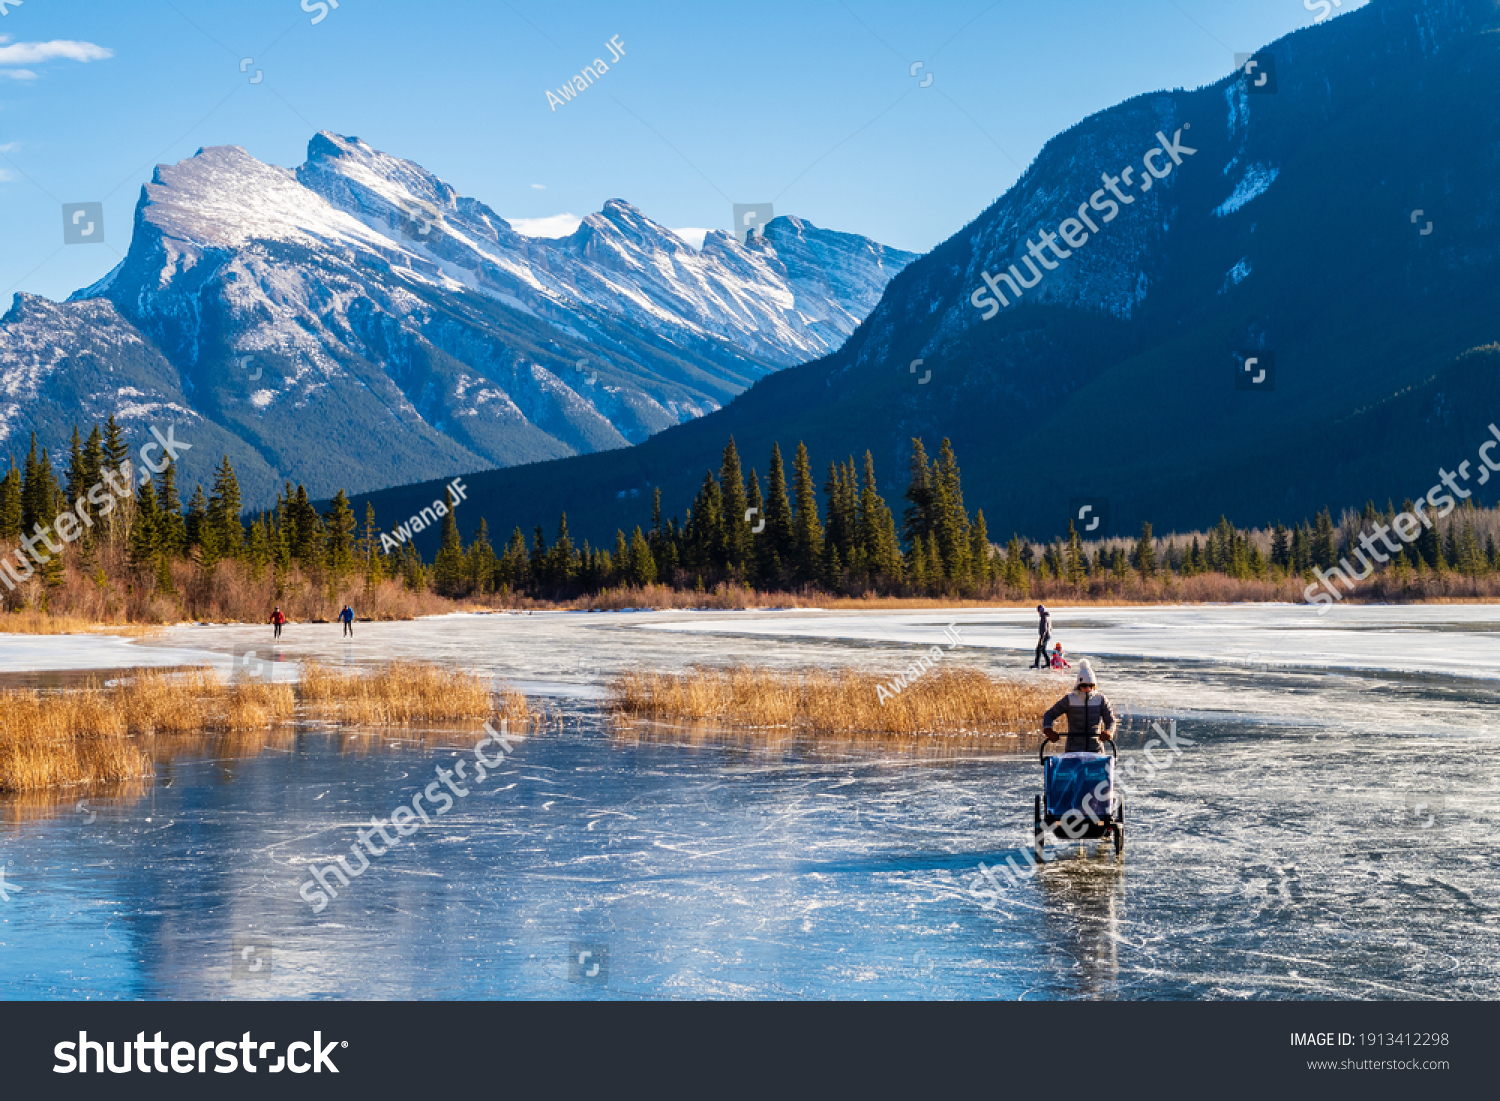 Banff, Canada - december 2020 : beautiful view of Vermilion lakes in winter